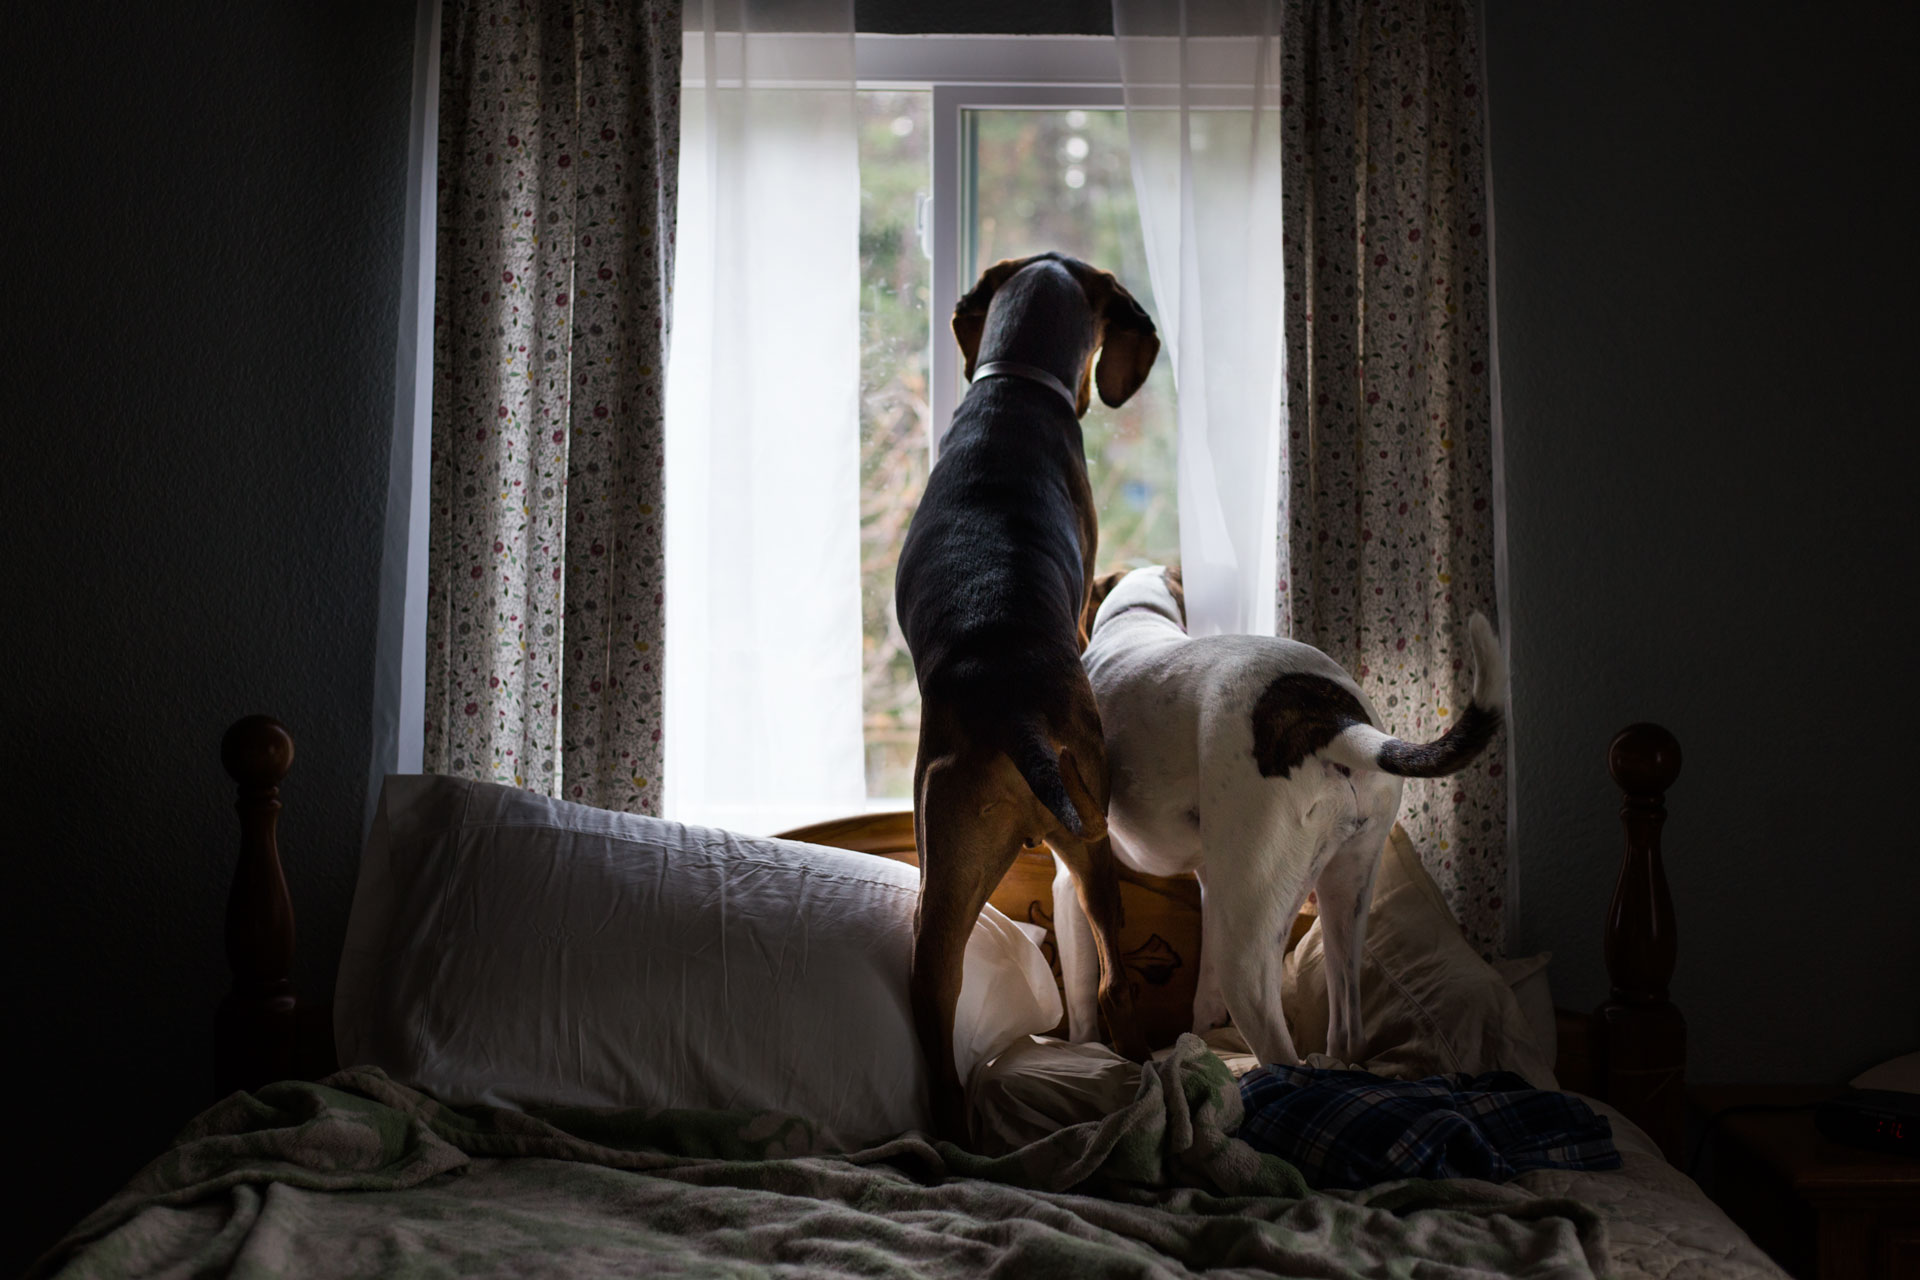 Two dogs standing on a bed and looking out a window